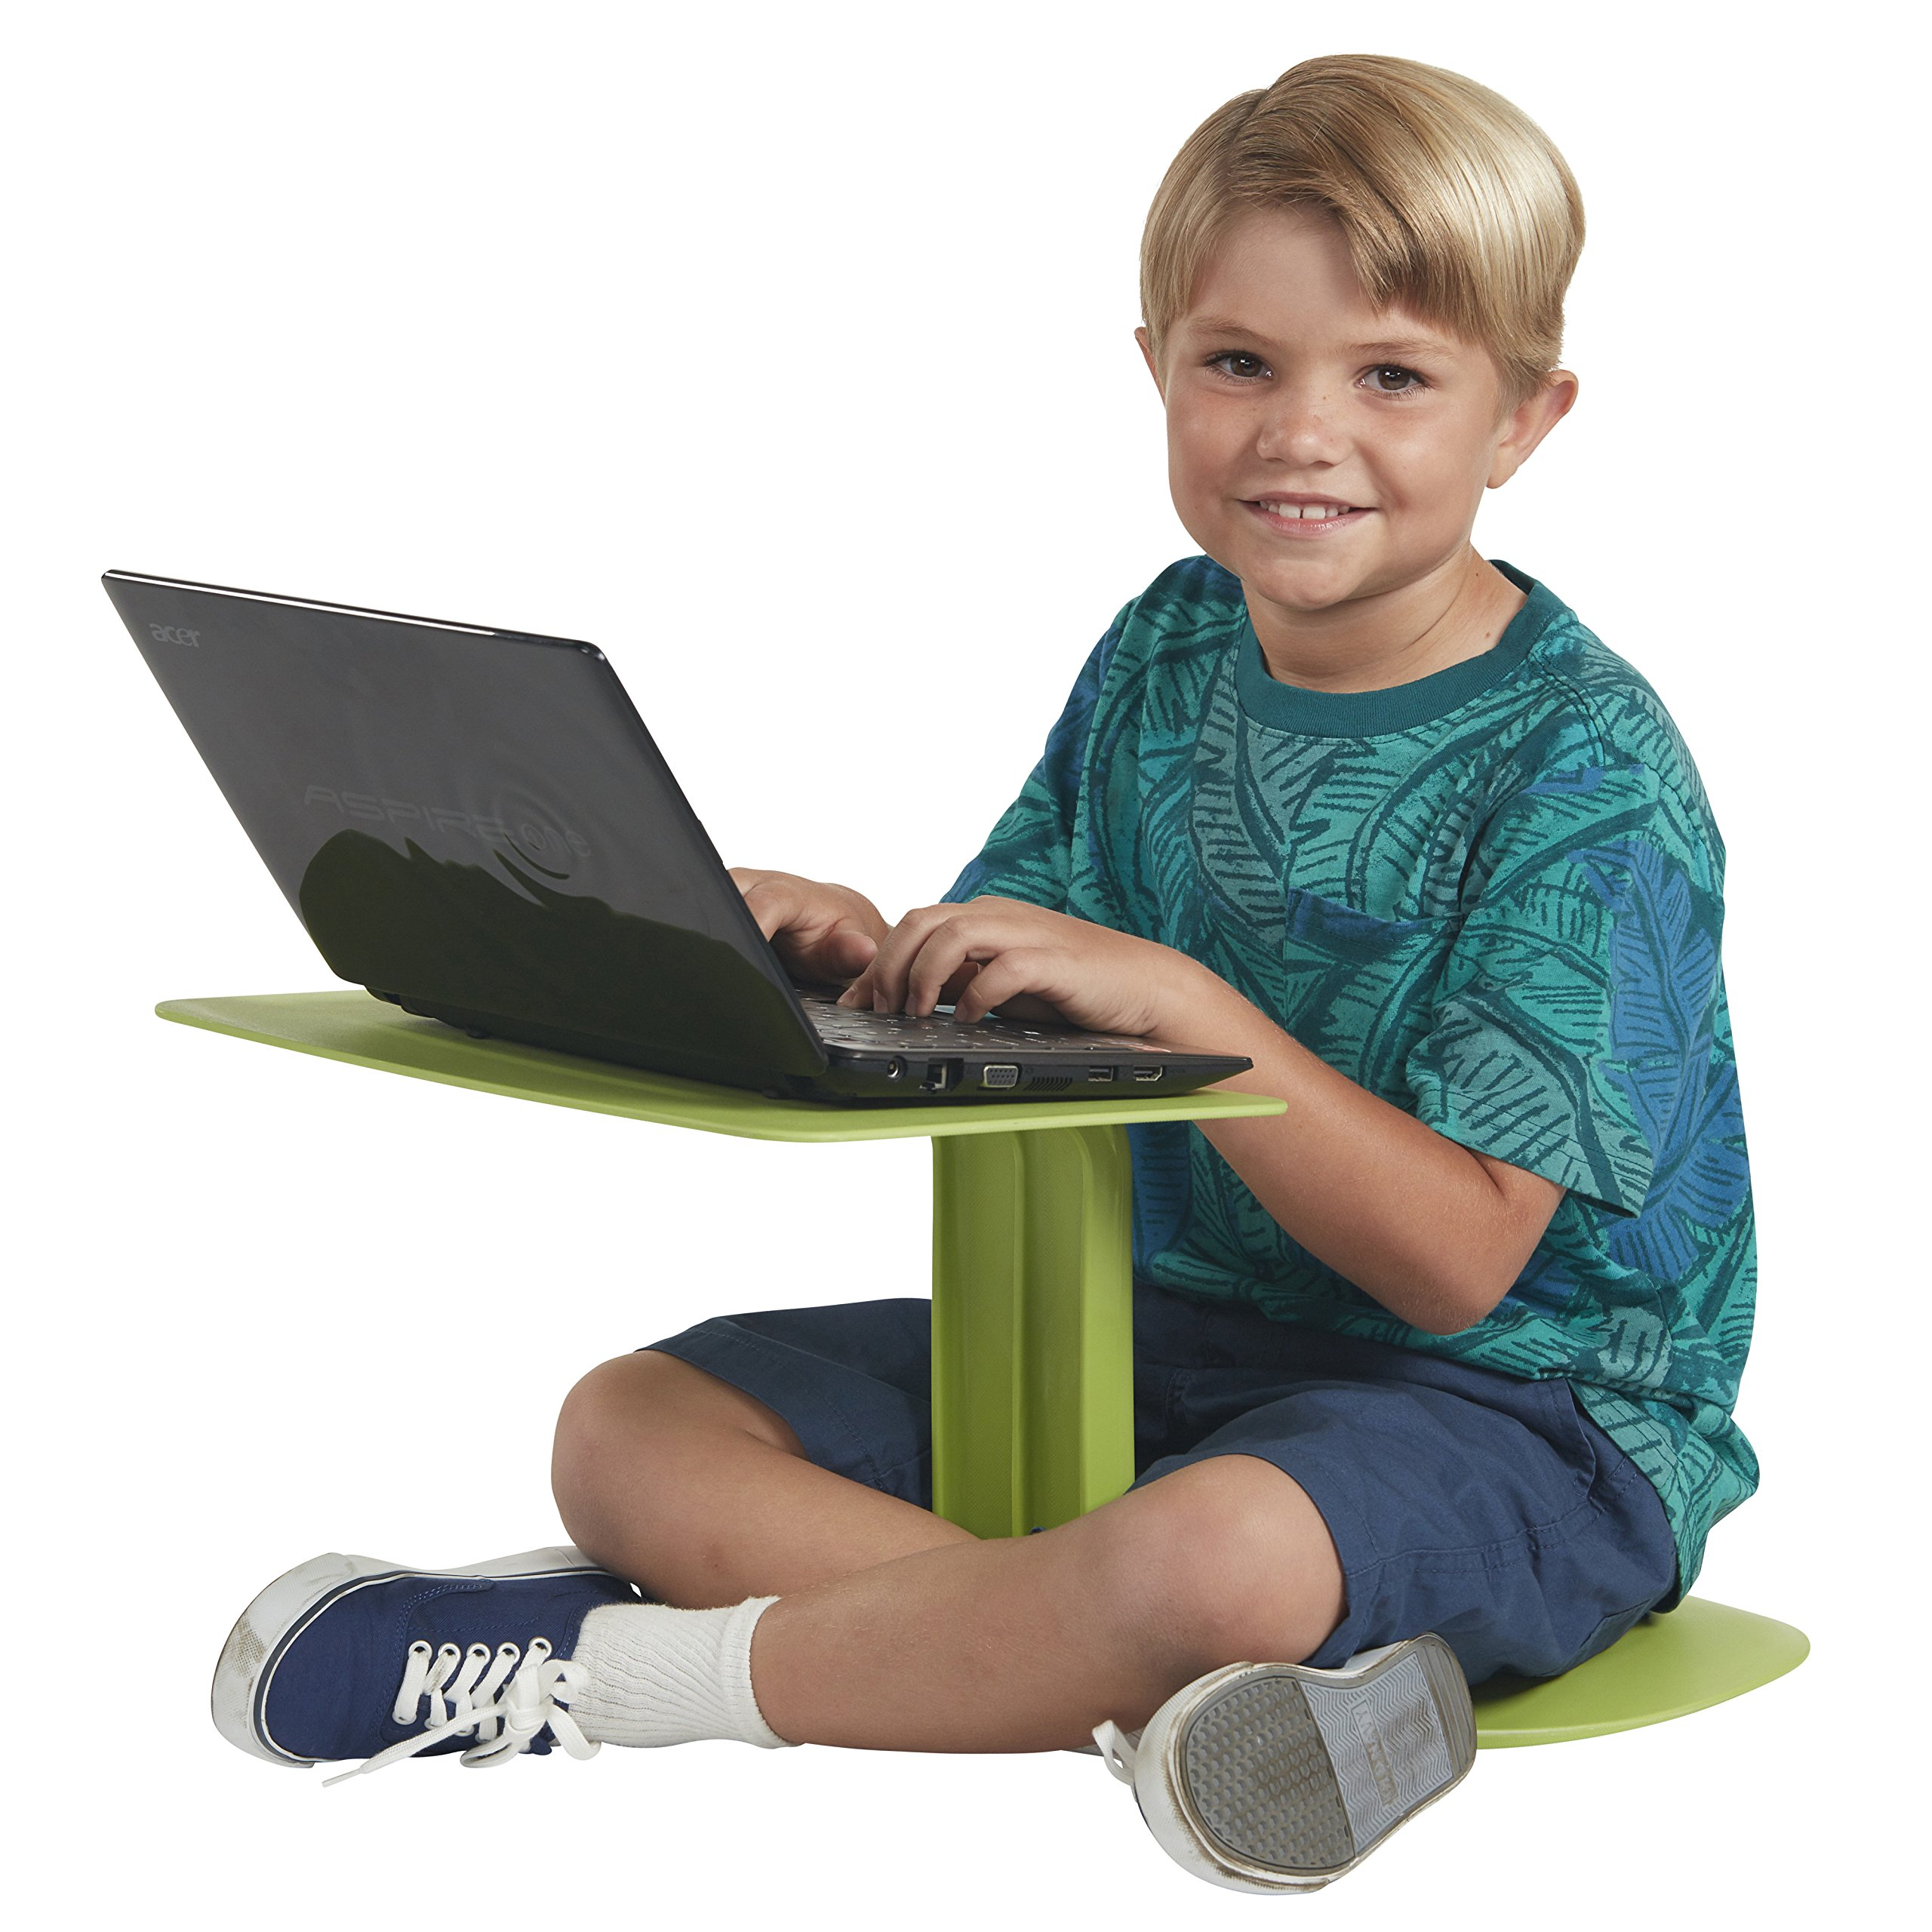 ECR4Kids The Surf Portable Lap Desk/Laptop Stand/Writing Table, Green by ECR4Kids